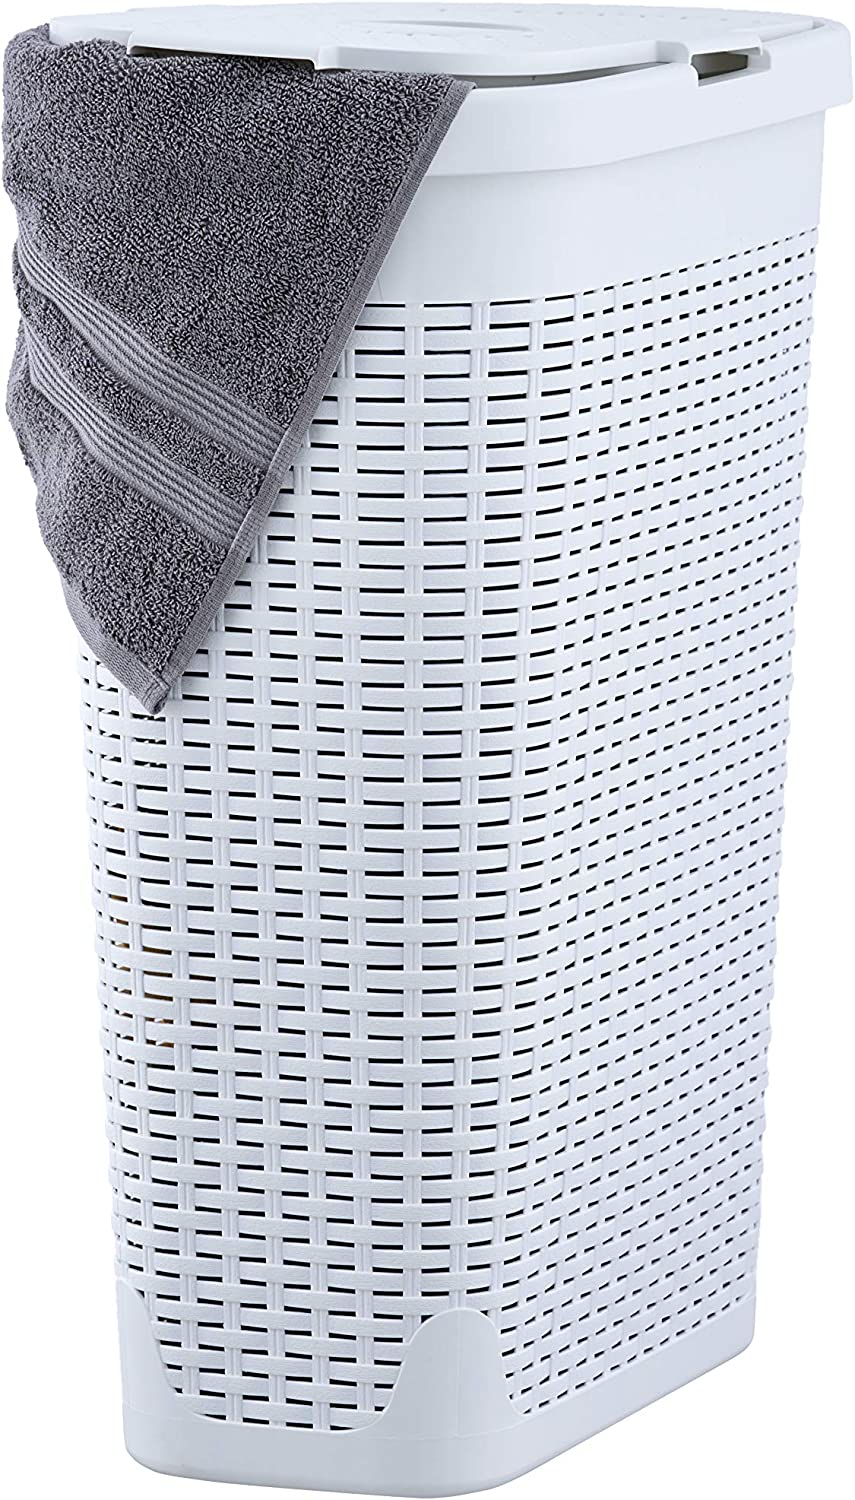 Superio Palm Luxe Narrow Laundry Hamper, 1.15 Bushel, White